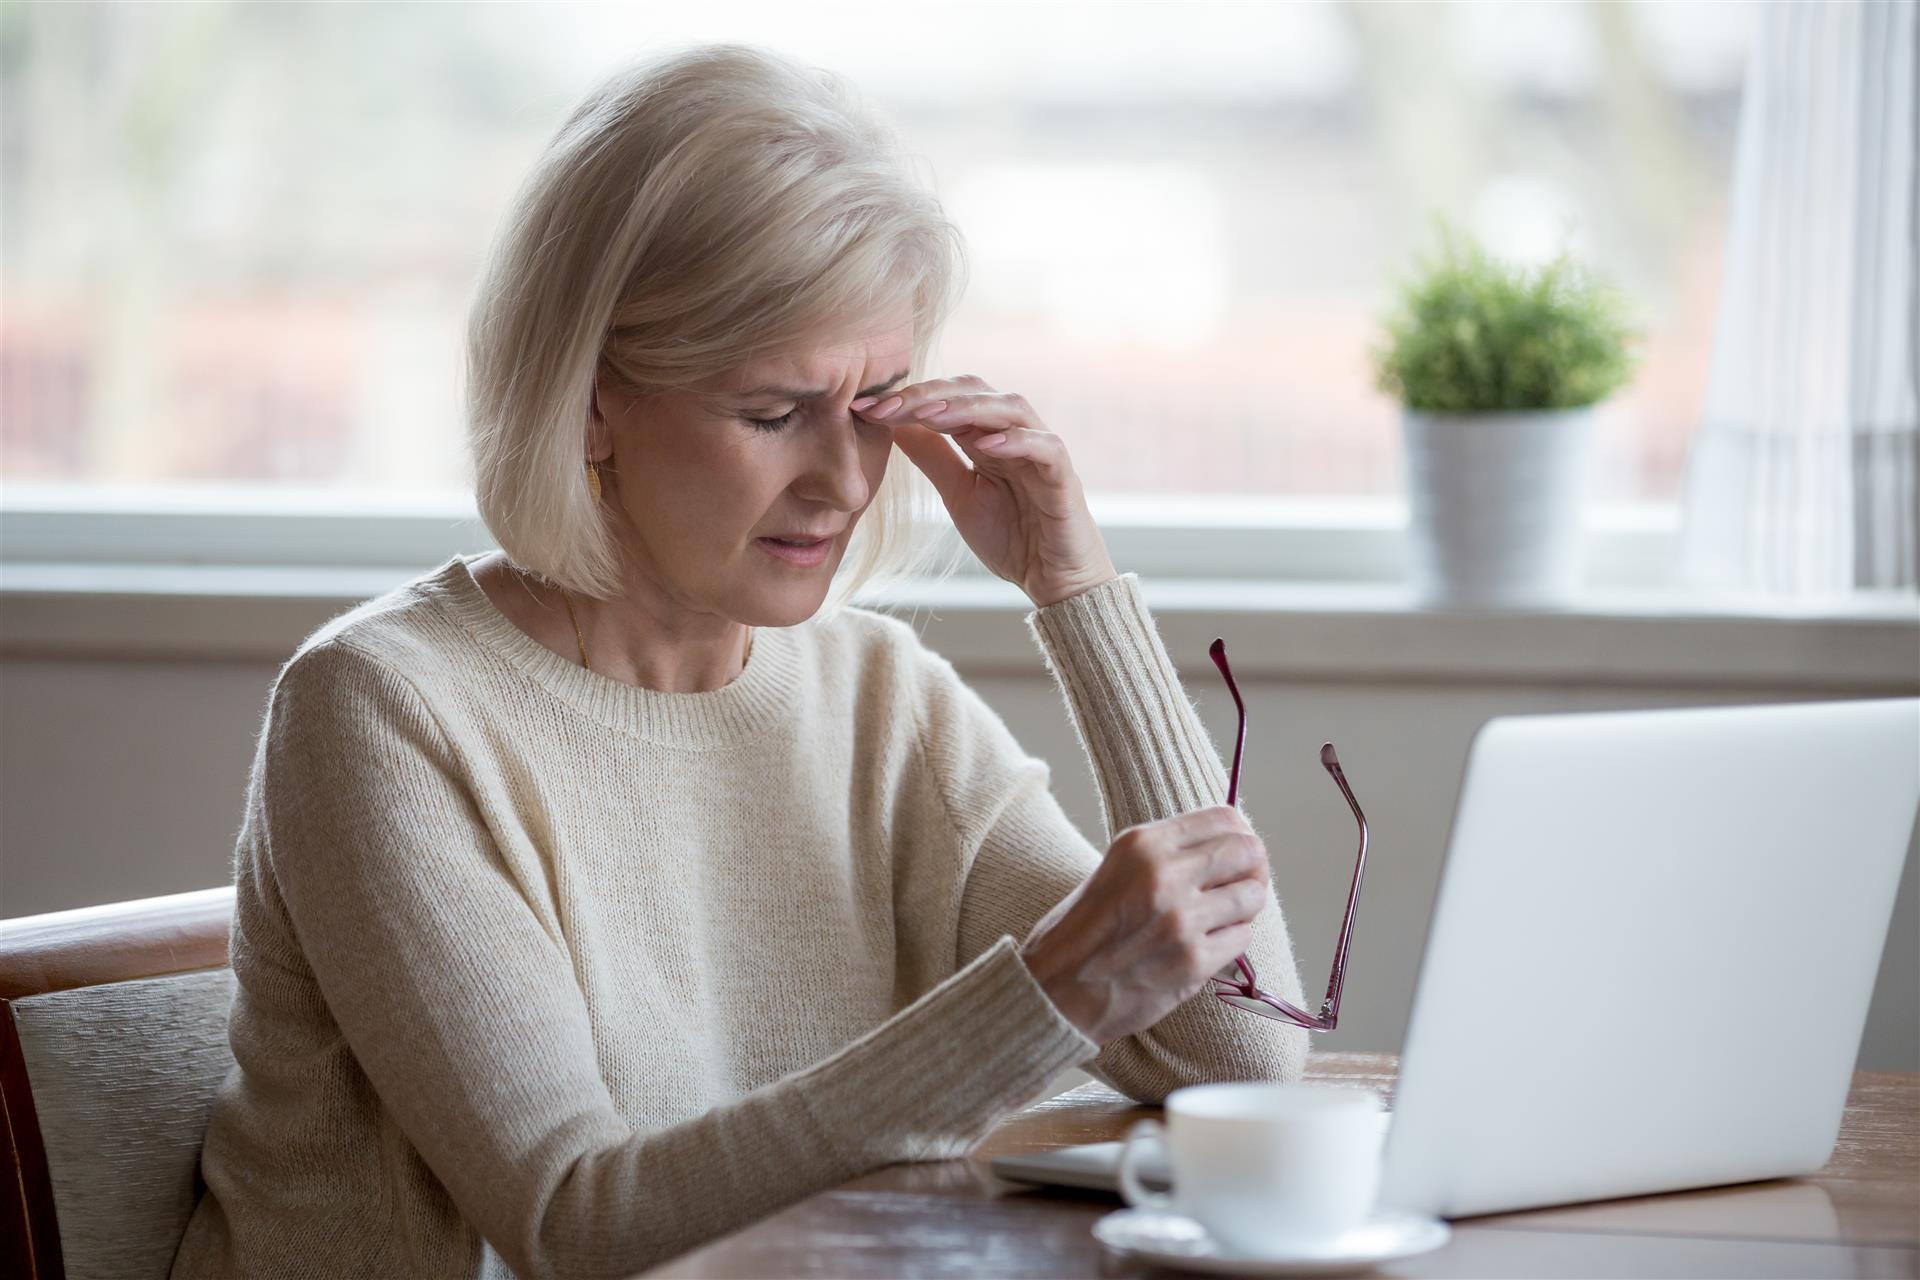 Fatigue: Causes and What You Can Do About It